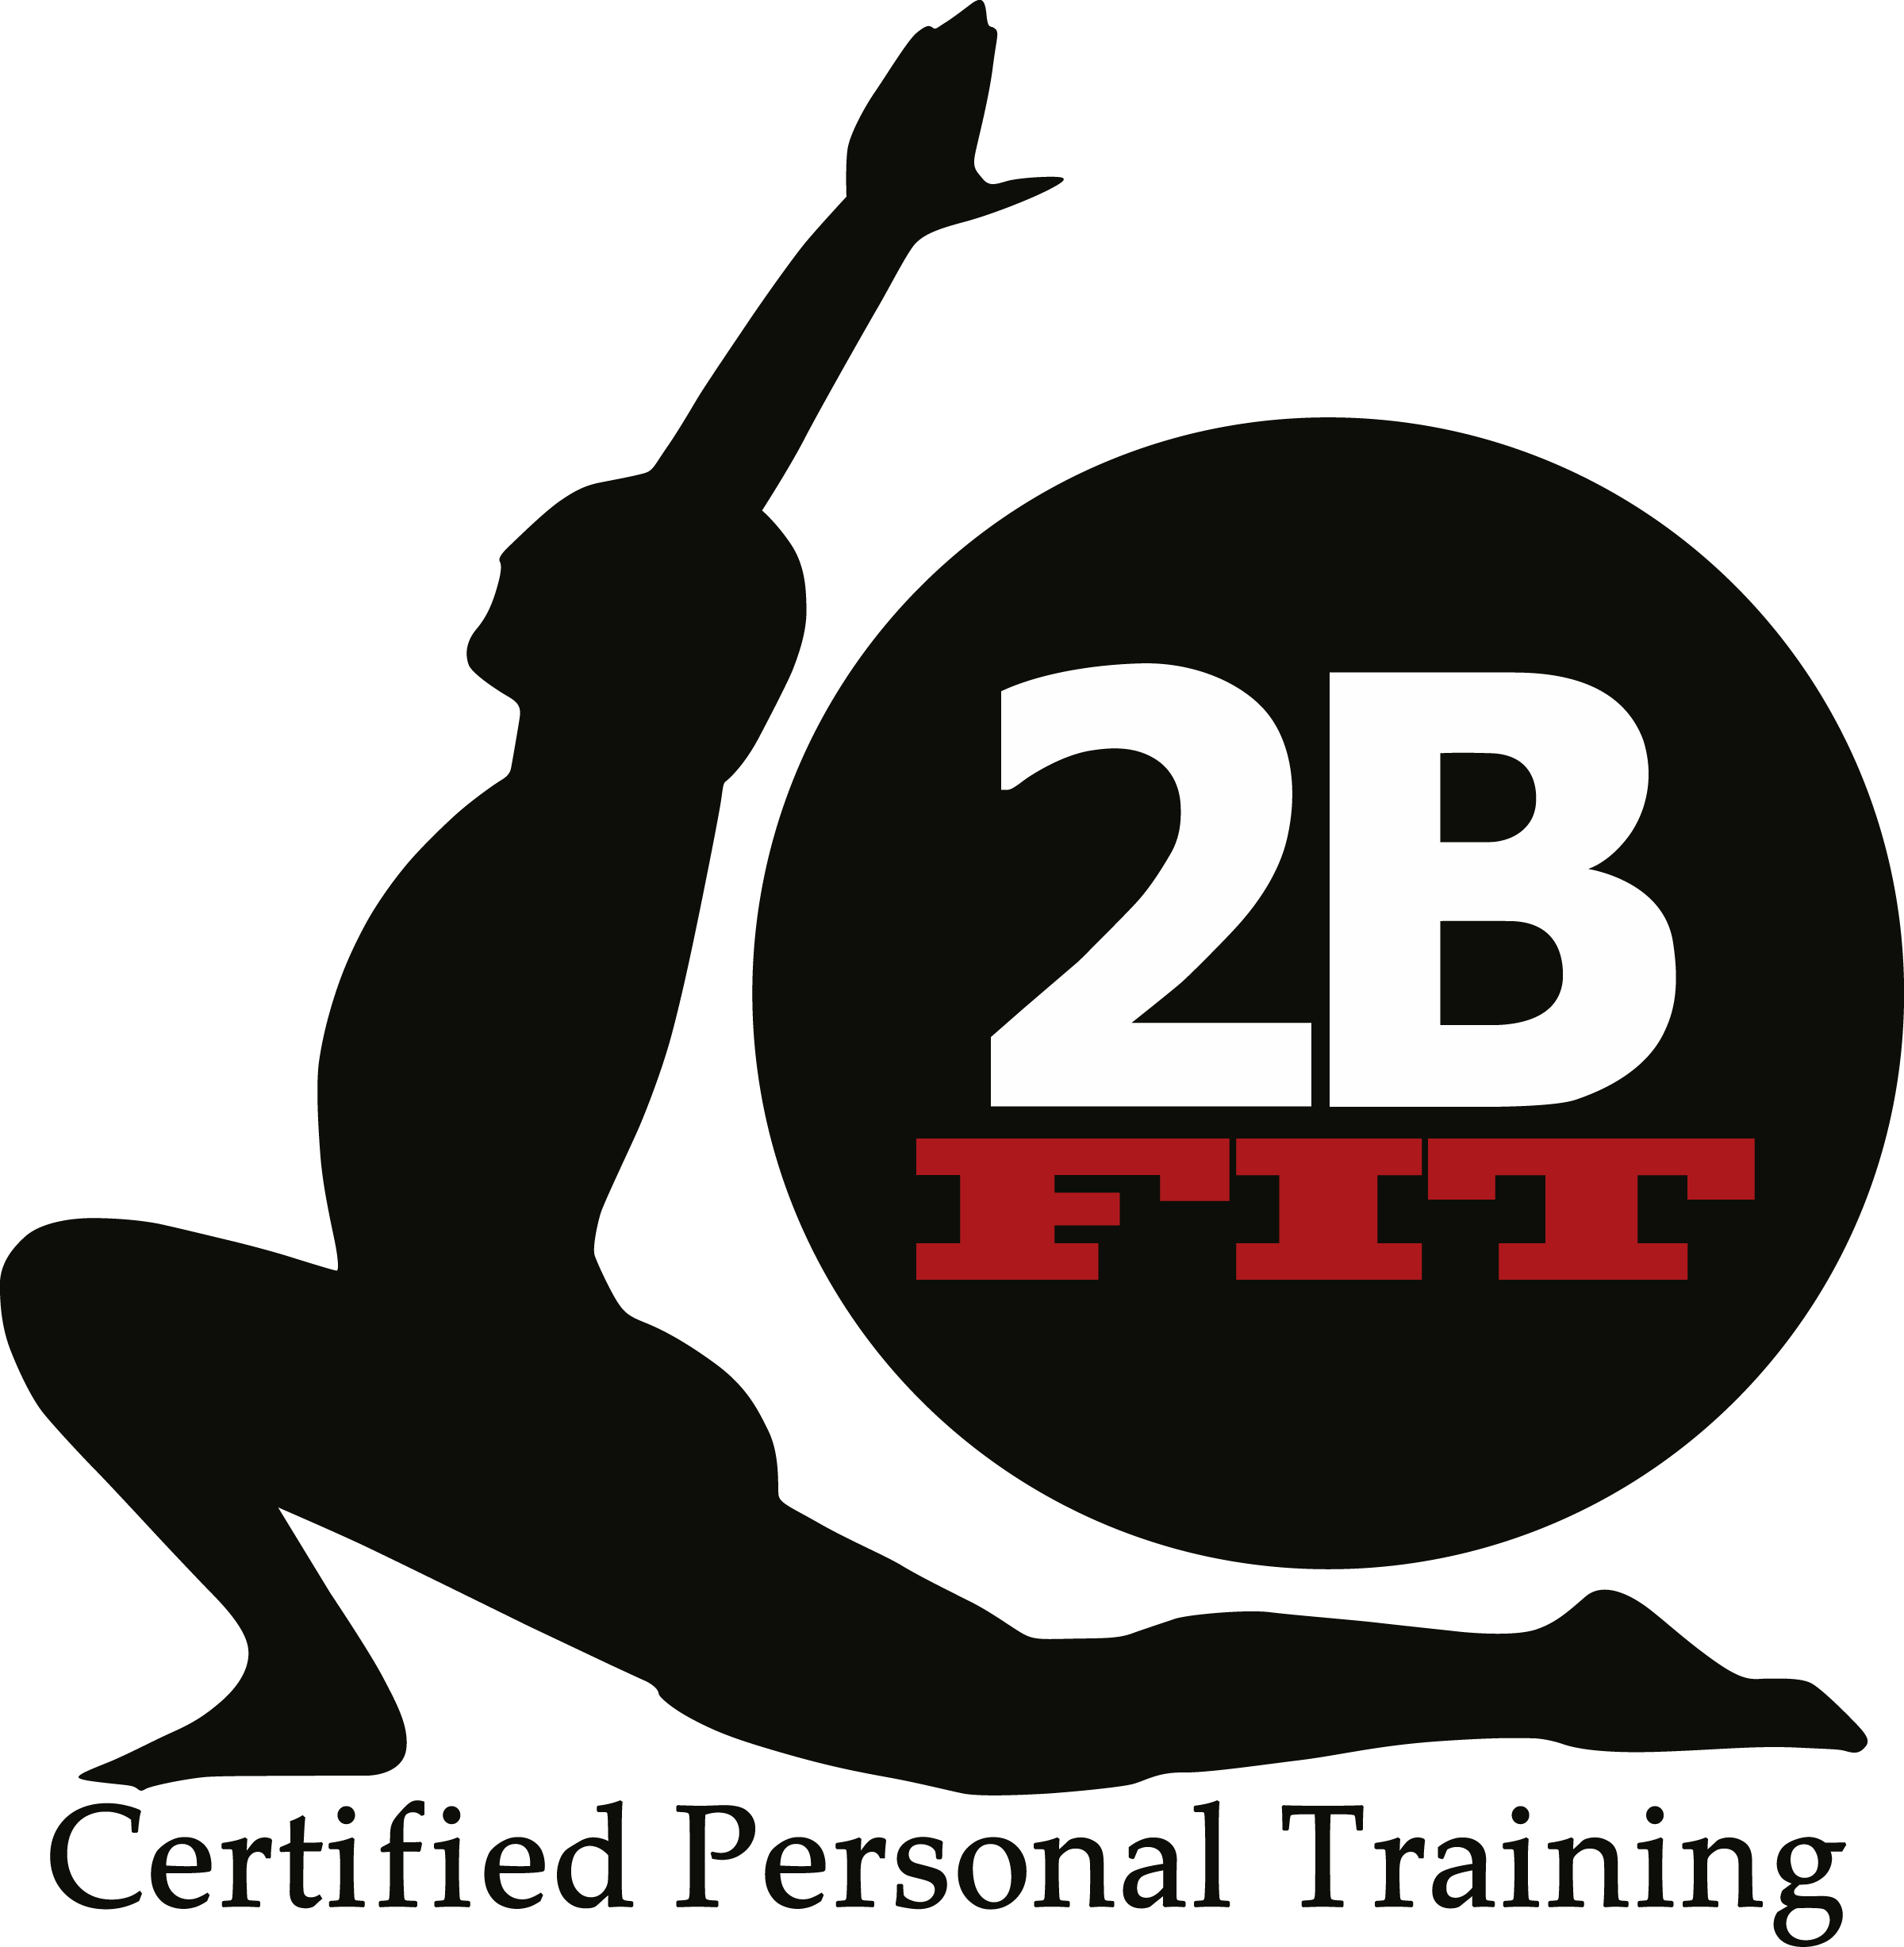 2BFit Certified Personal Training